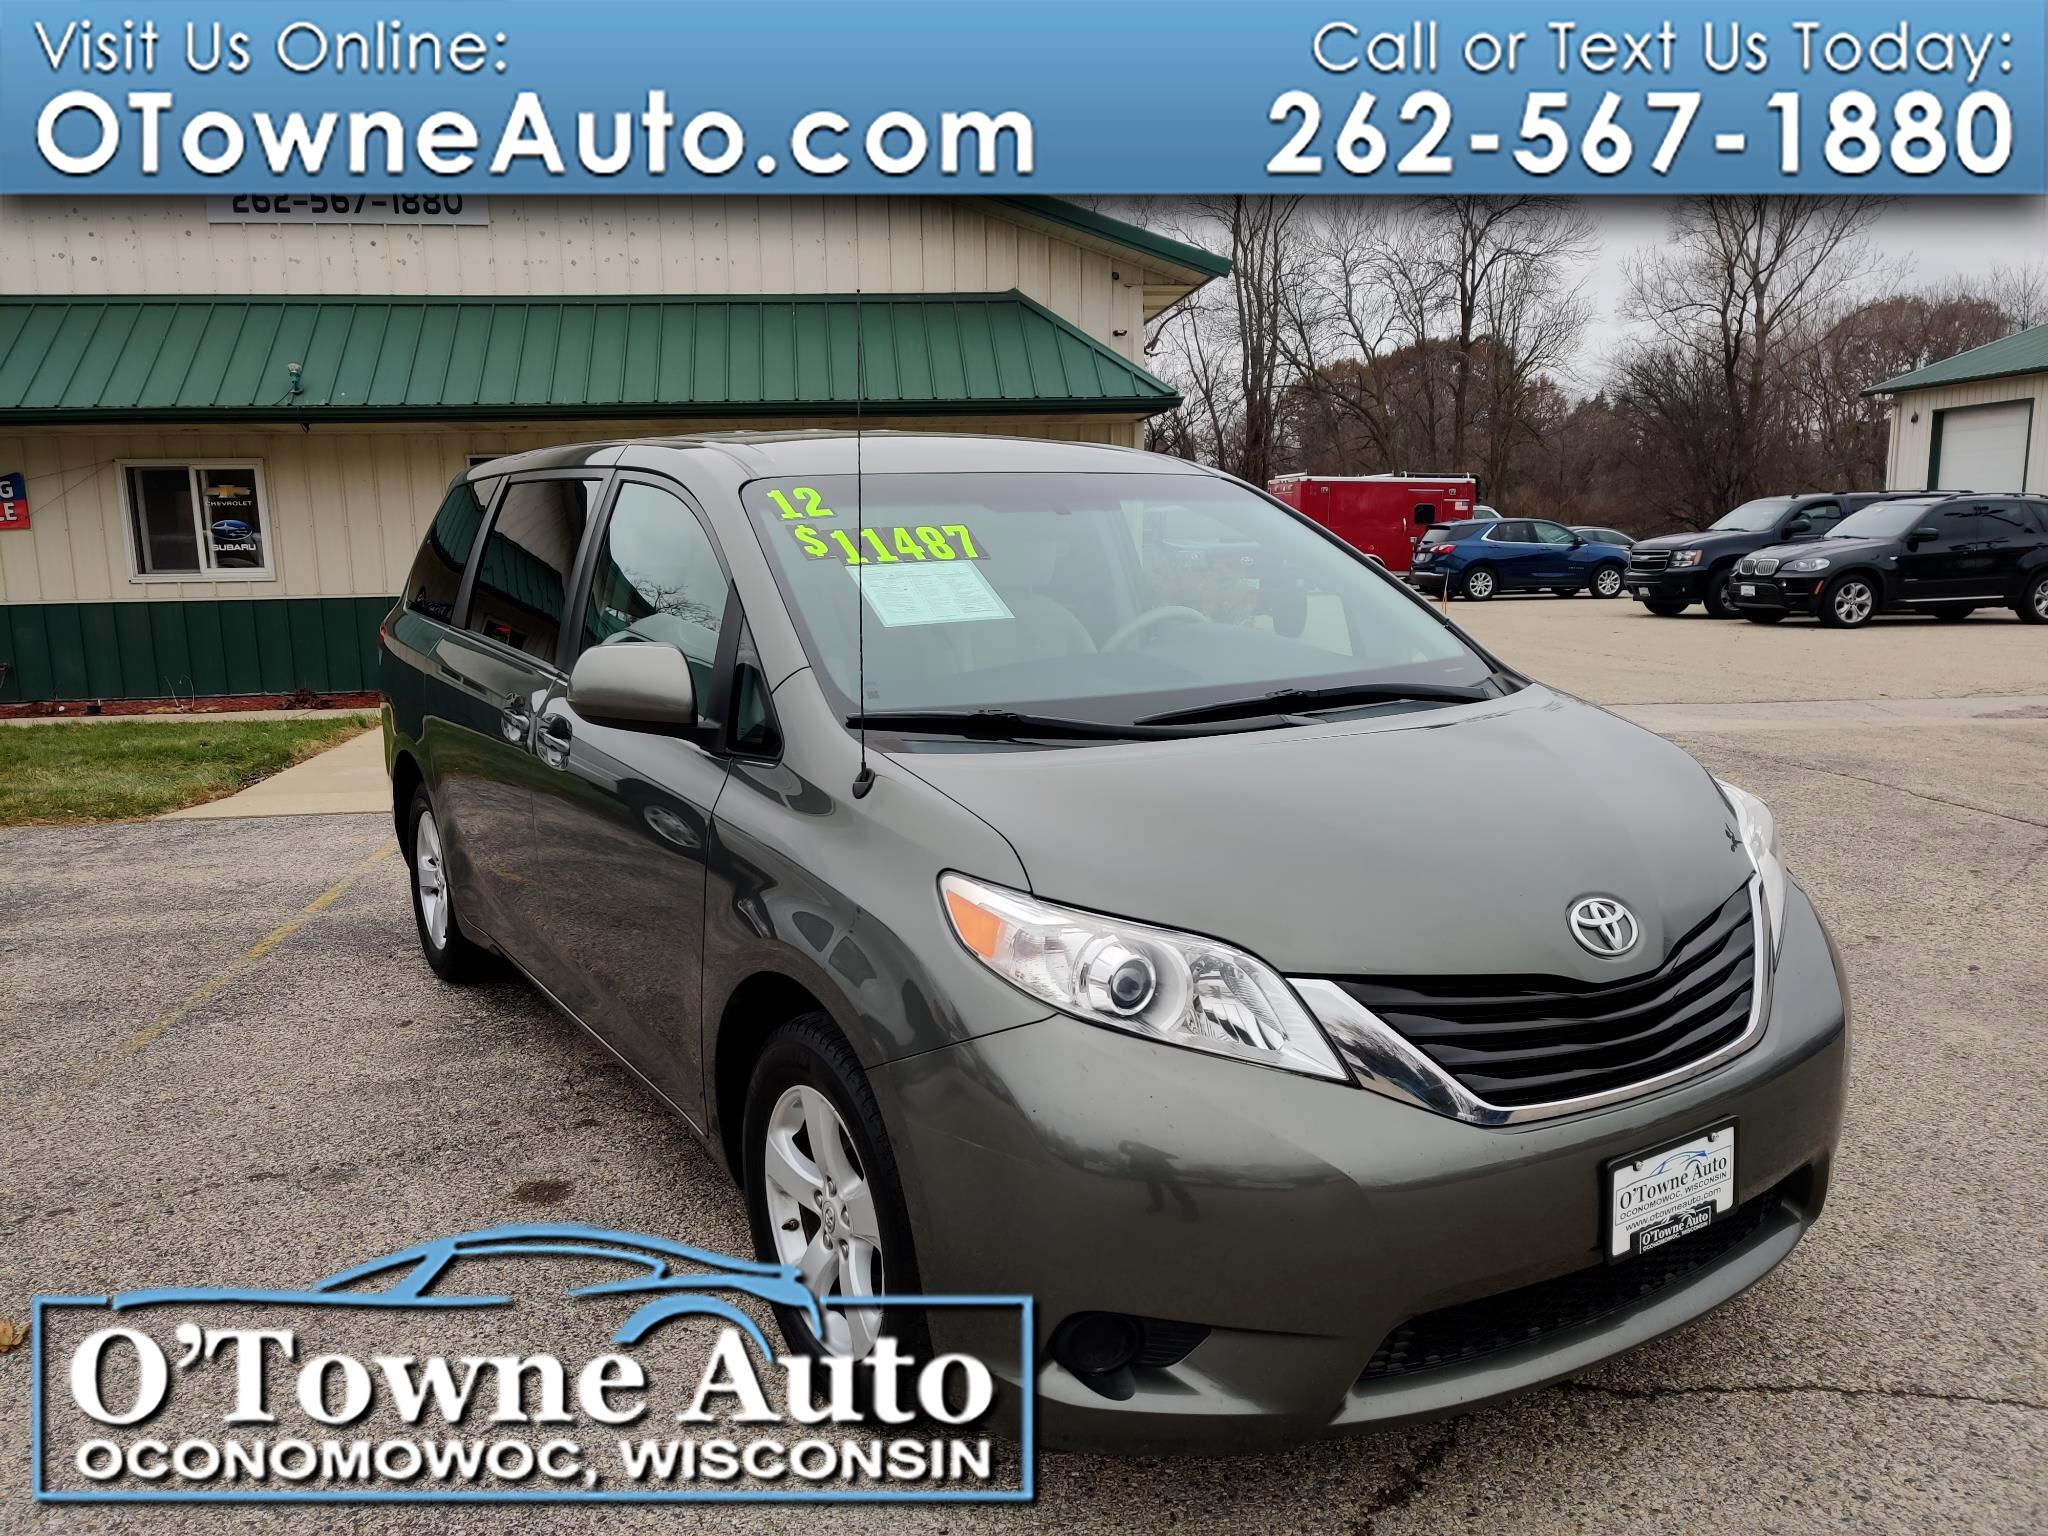 Toyota Sienna 5dr 8-Pass Van I4 LE FWD (Natl) 2012